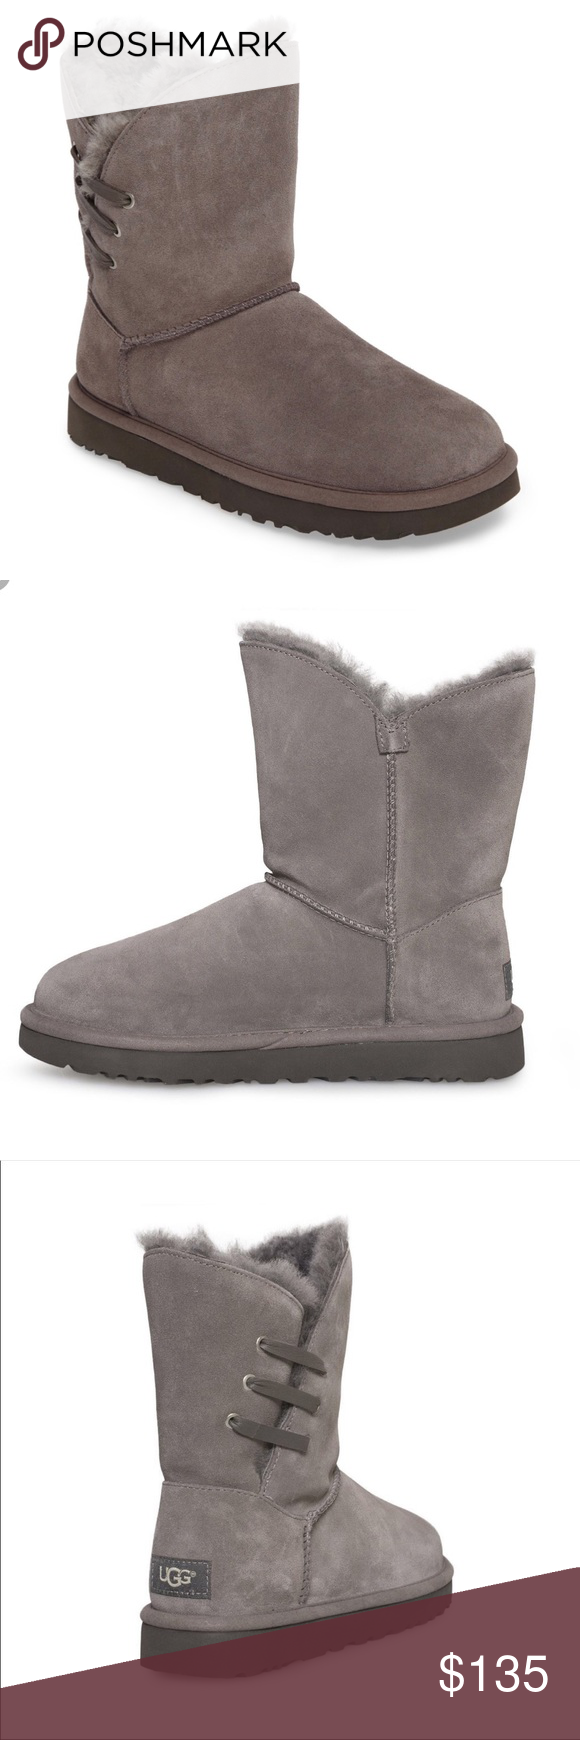 b24dd94e663 UGG Constantine Boots Charcoal Sheepskin NWT 6 UGG Constantine Boot ...